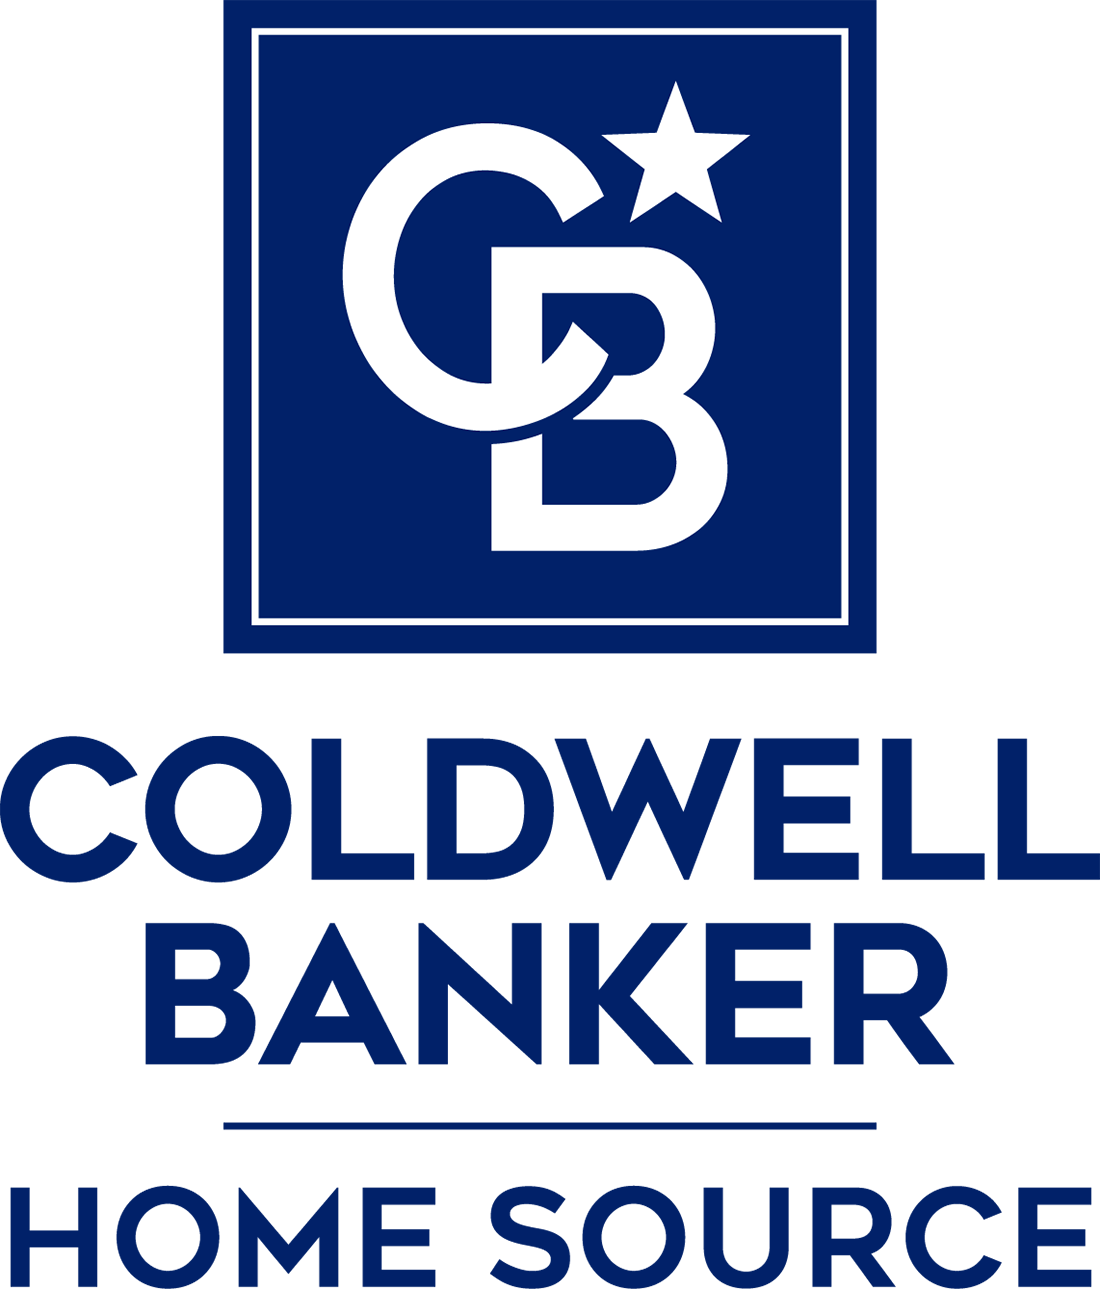 Marilyn Pellouchoud - Coldwell Banker Home Source Logo